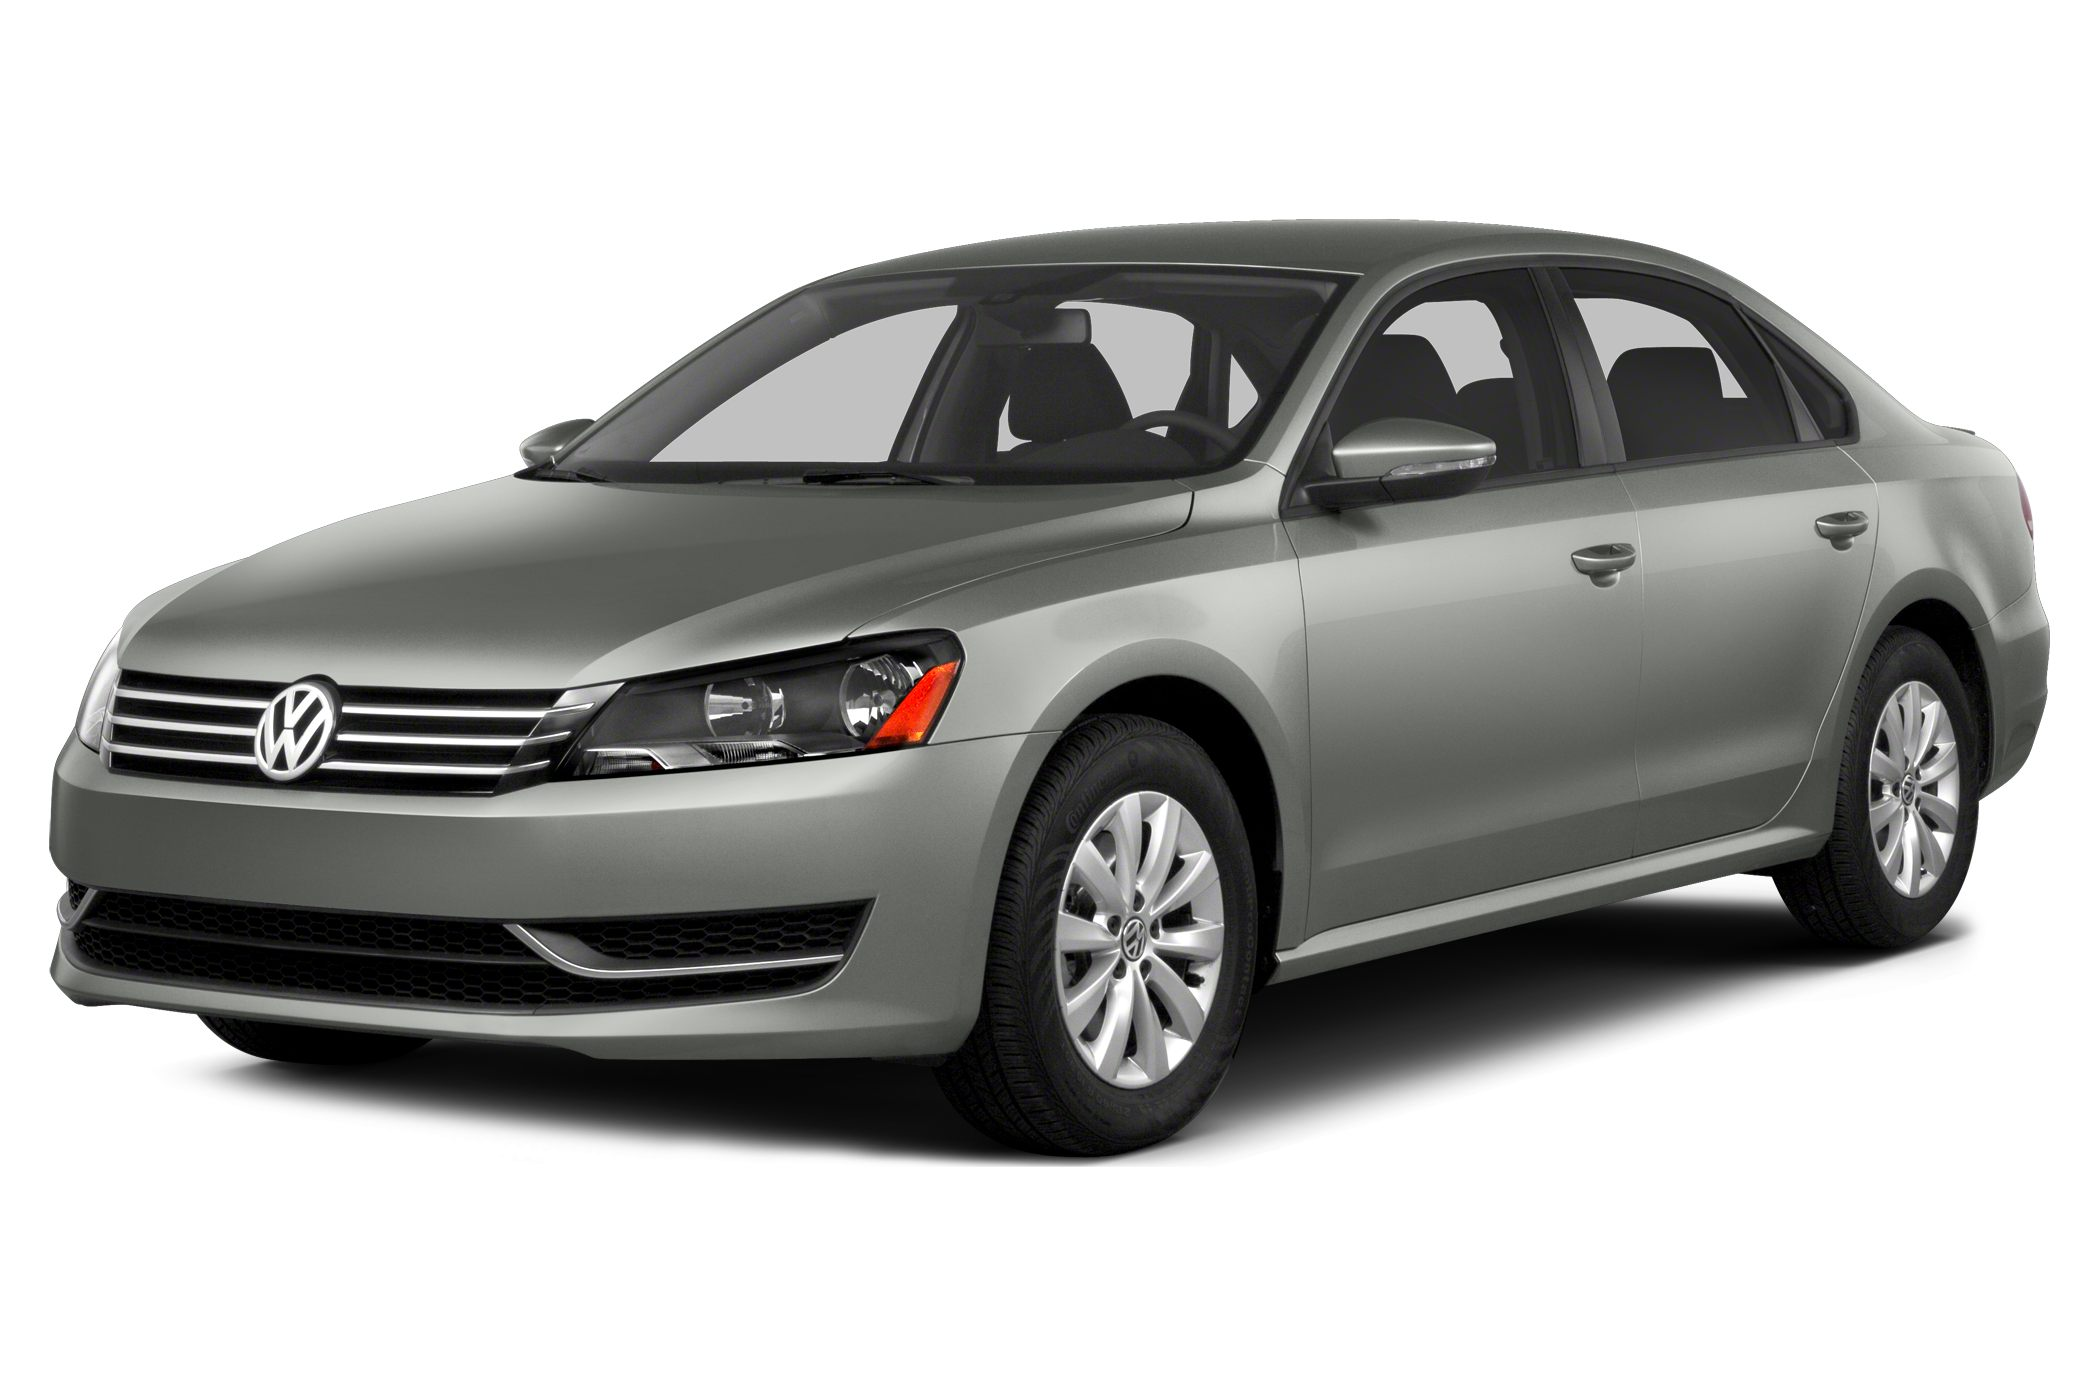 2015 Volkswagen Passat 1.8T Sport Sedan for sale in Chico for $28,000 with 213 miles.